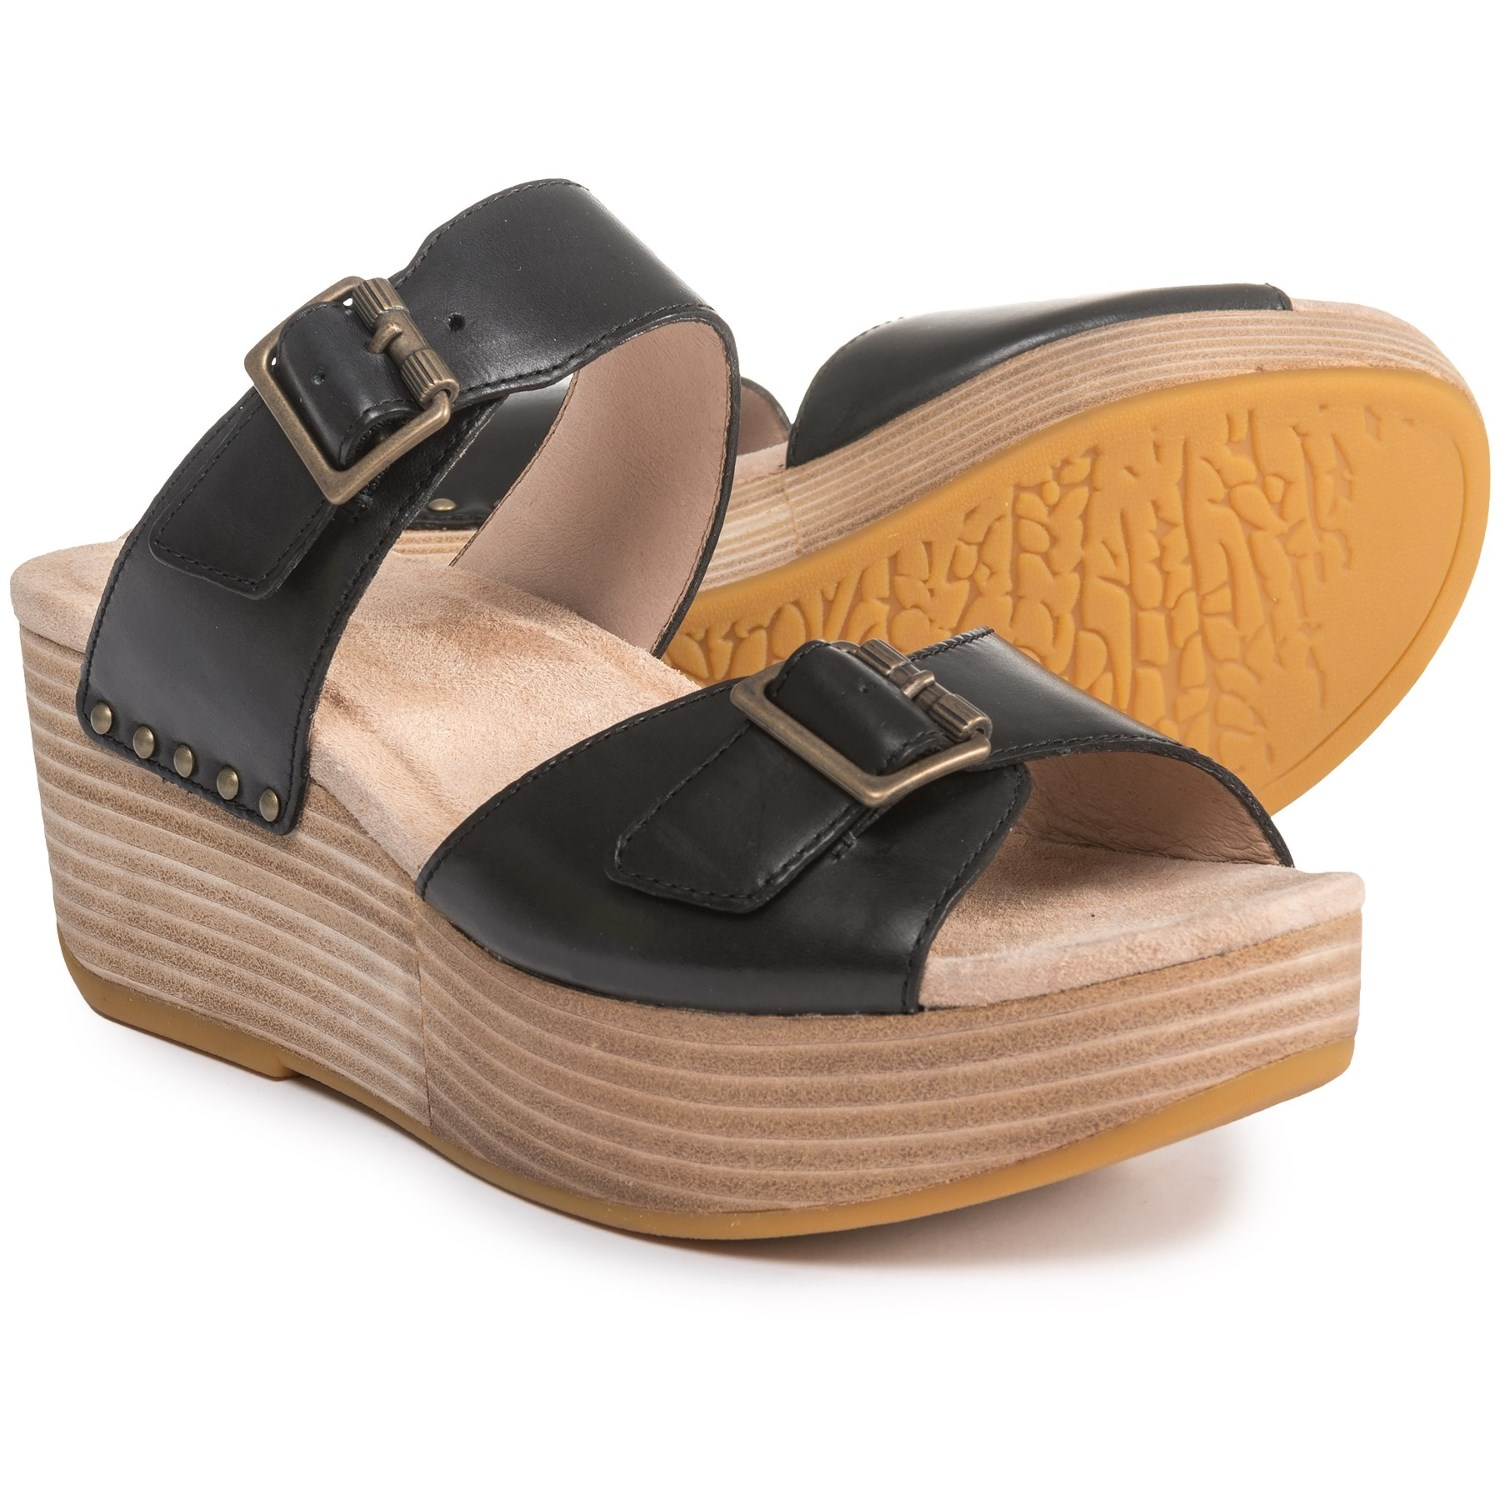 Dansko Selma Two-Buckle Wedge Sandals - Leather (For Women) in Black  Burnished ...